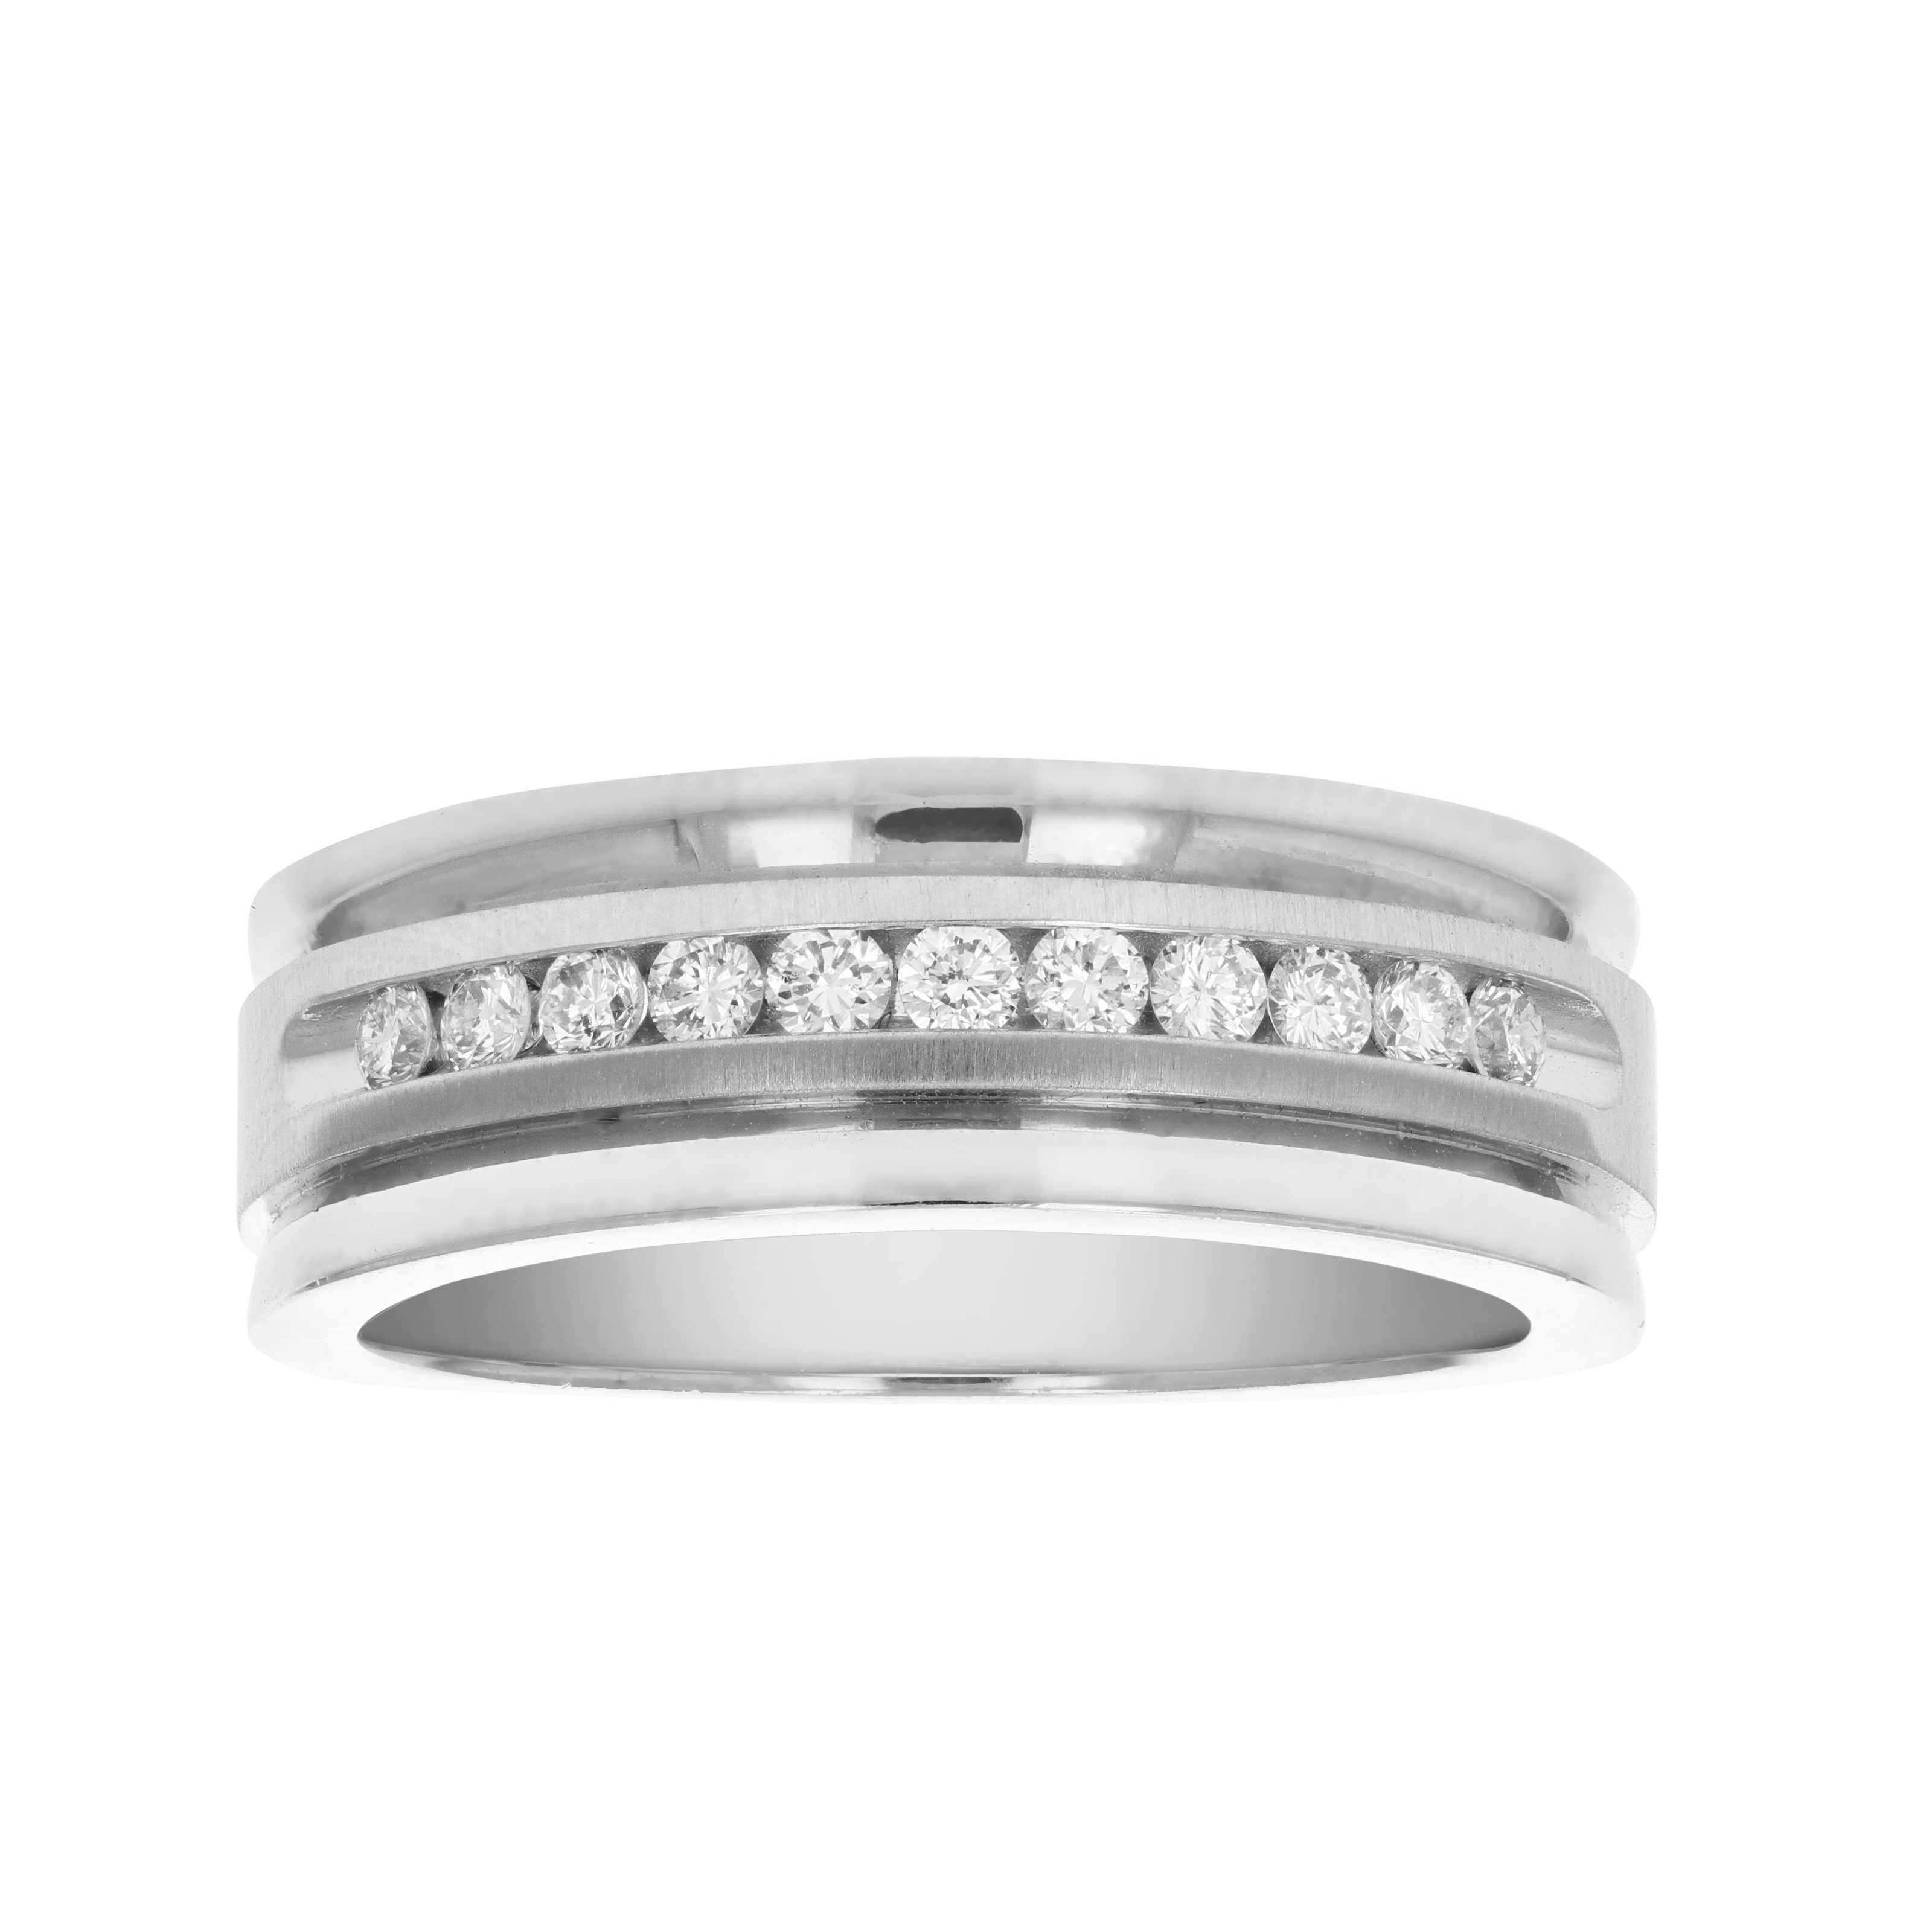 Details About Certified 1/4 Ct Si2 I1 11 Stone 14K Gold Machine Diamond  Wedding Band Size 7 Within Recent Certified Diamond Anniversary Bands In Gold (View 9 of 25)